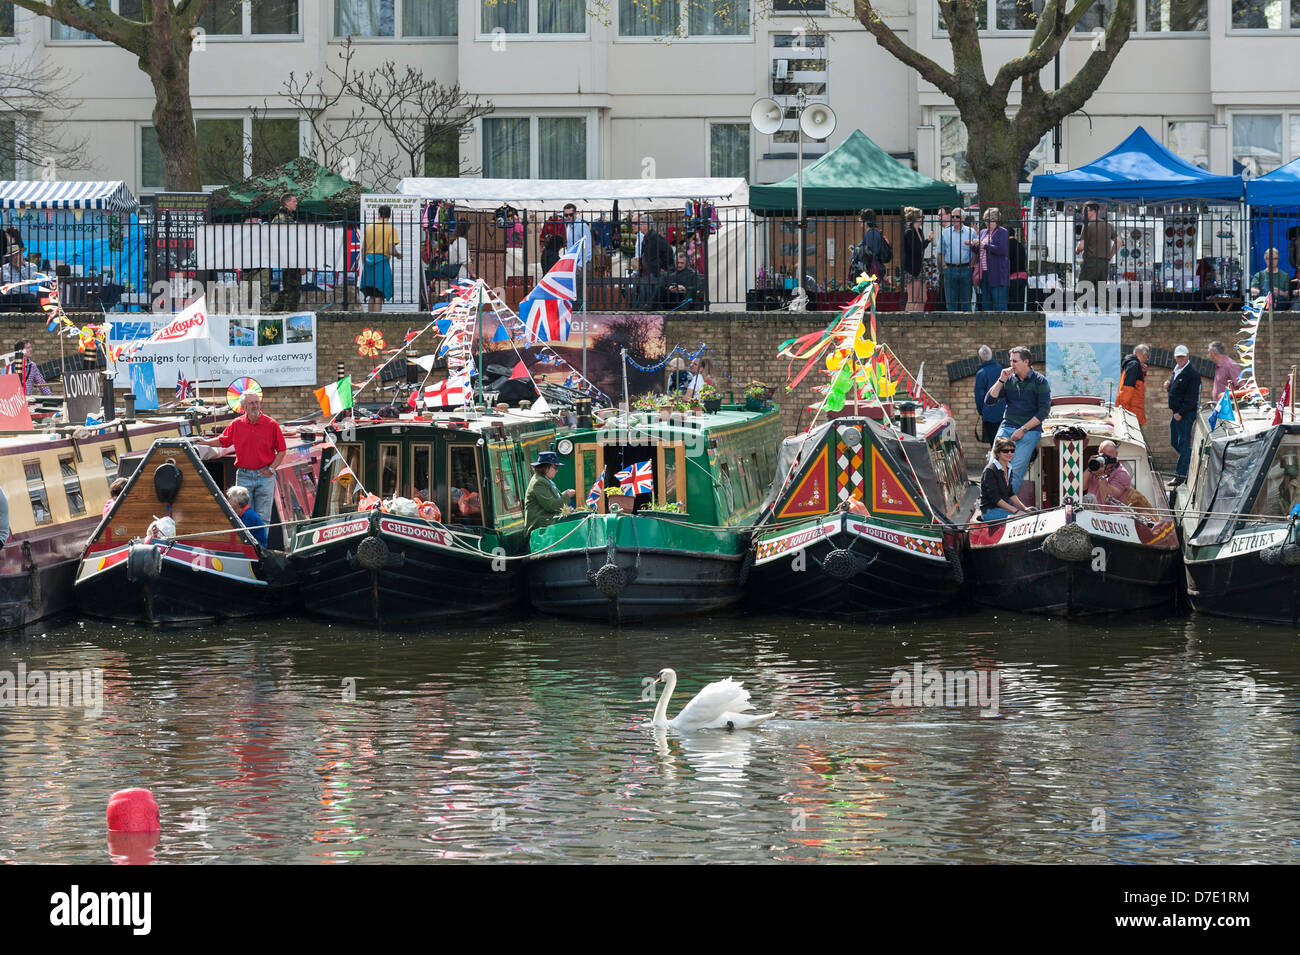 London, UK. 5th May, 2013. Canalboats decorated with colourful flags and bunting gathering for the Canalway Cavalcade - Stock Image